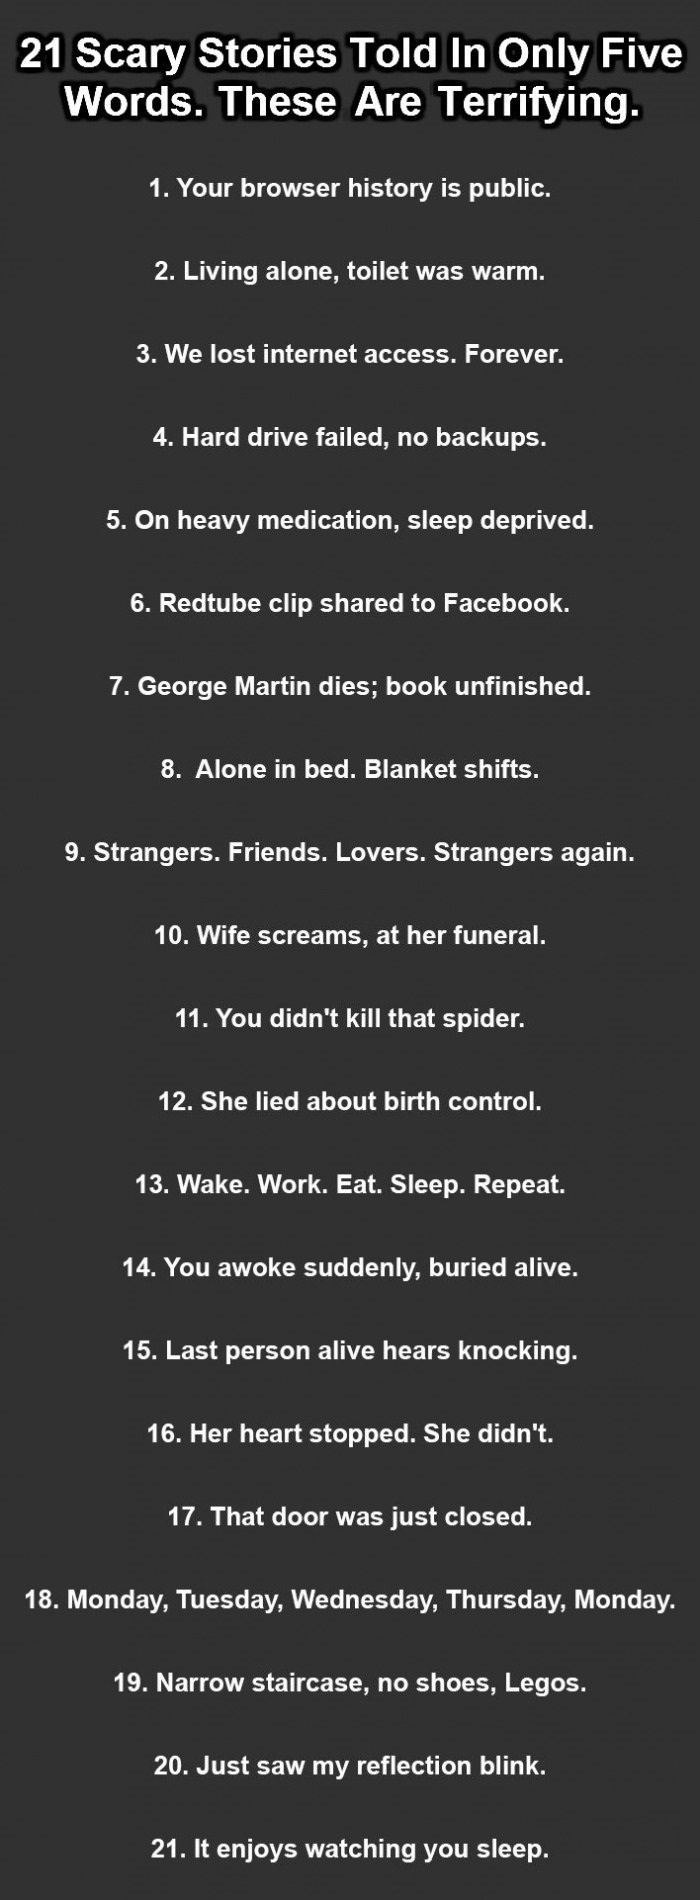 Oh no. 2spooky4me. 21 Scary Stories Told In Only Five Words. These Are Terrifying. 1. Your browser history is public. 2. Living alone, toilet was warm. 3. We lo